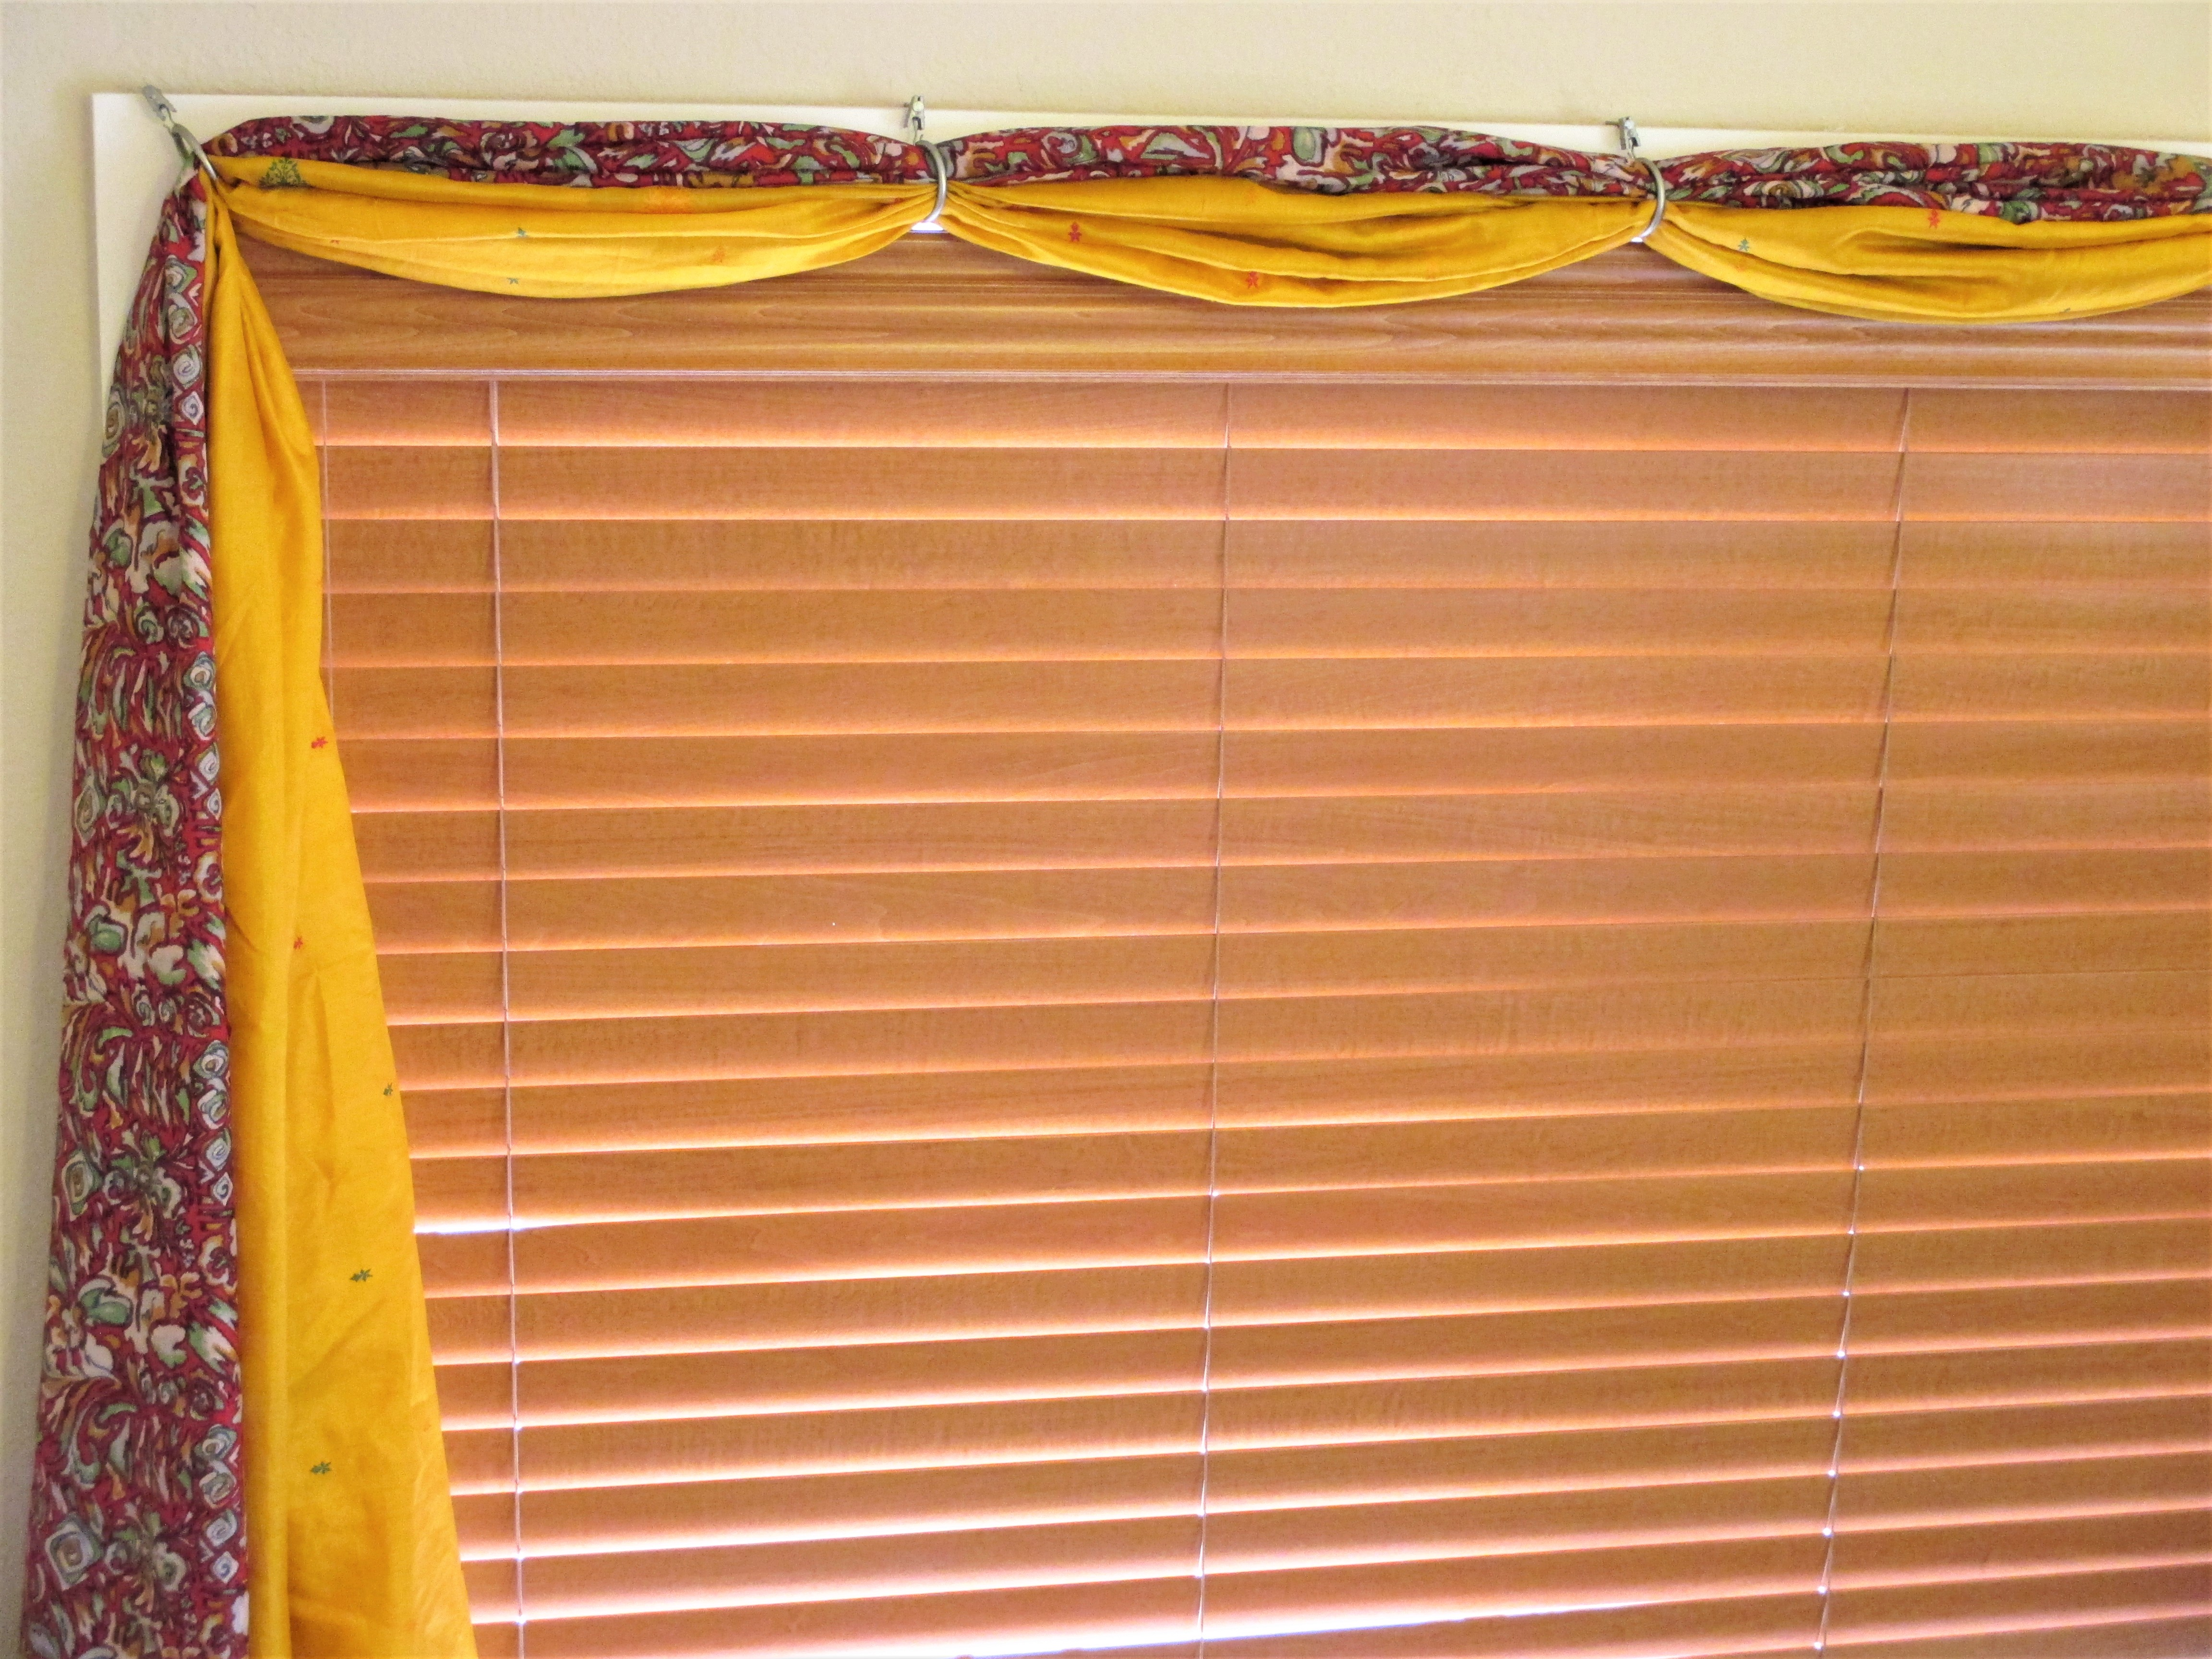 Draping Curtains Over A Rod